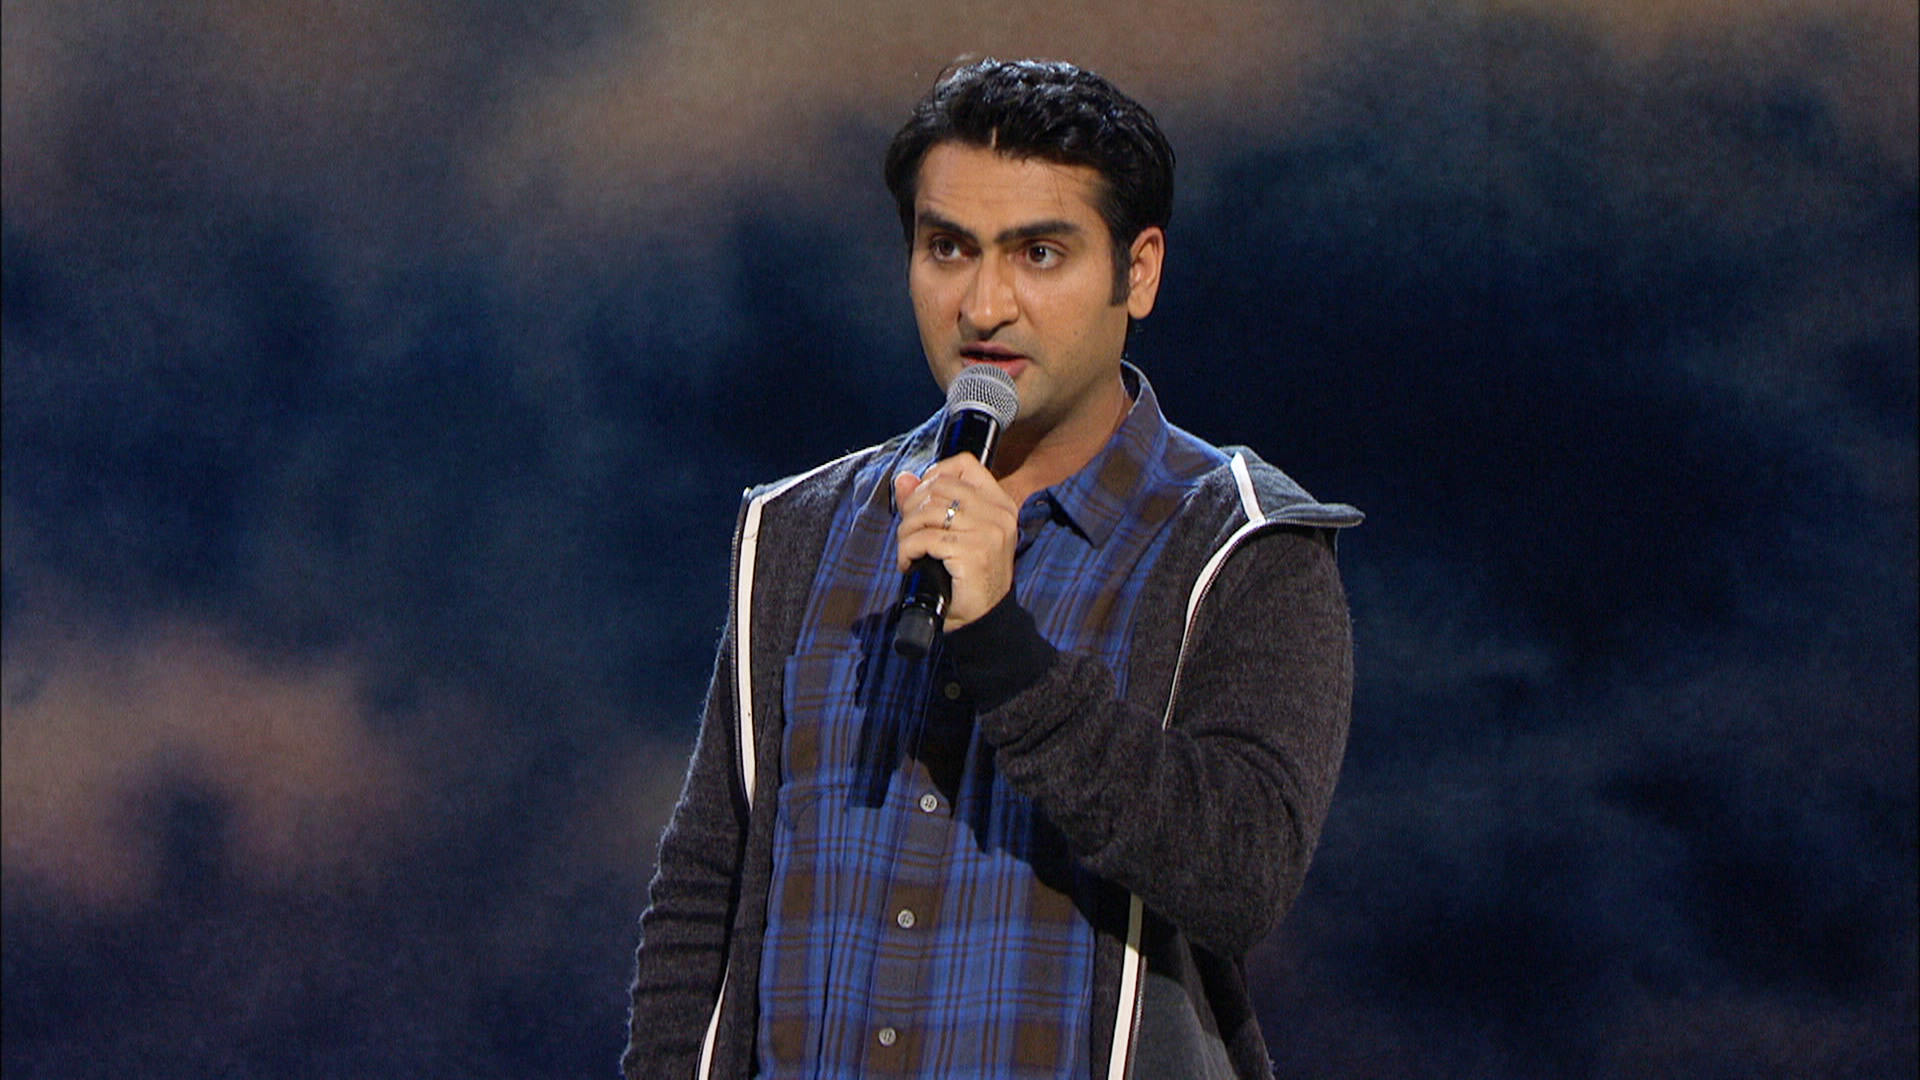 Uncensored - Kumail Nanjiani - Pakistani Birthday Entertainment Pt. 3